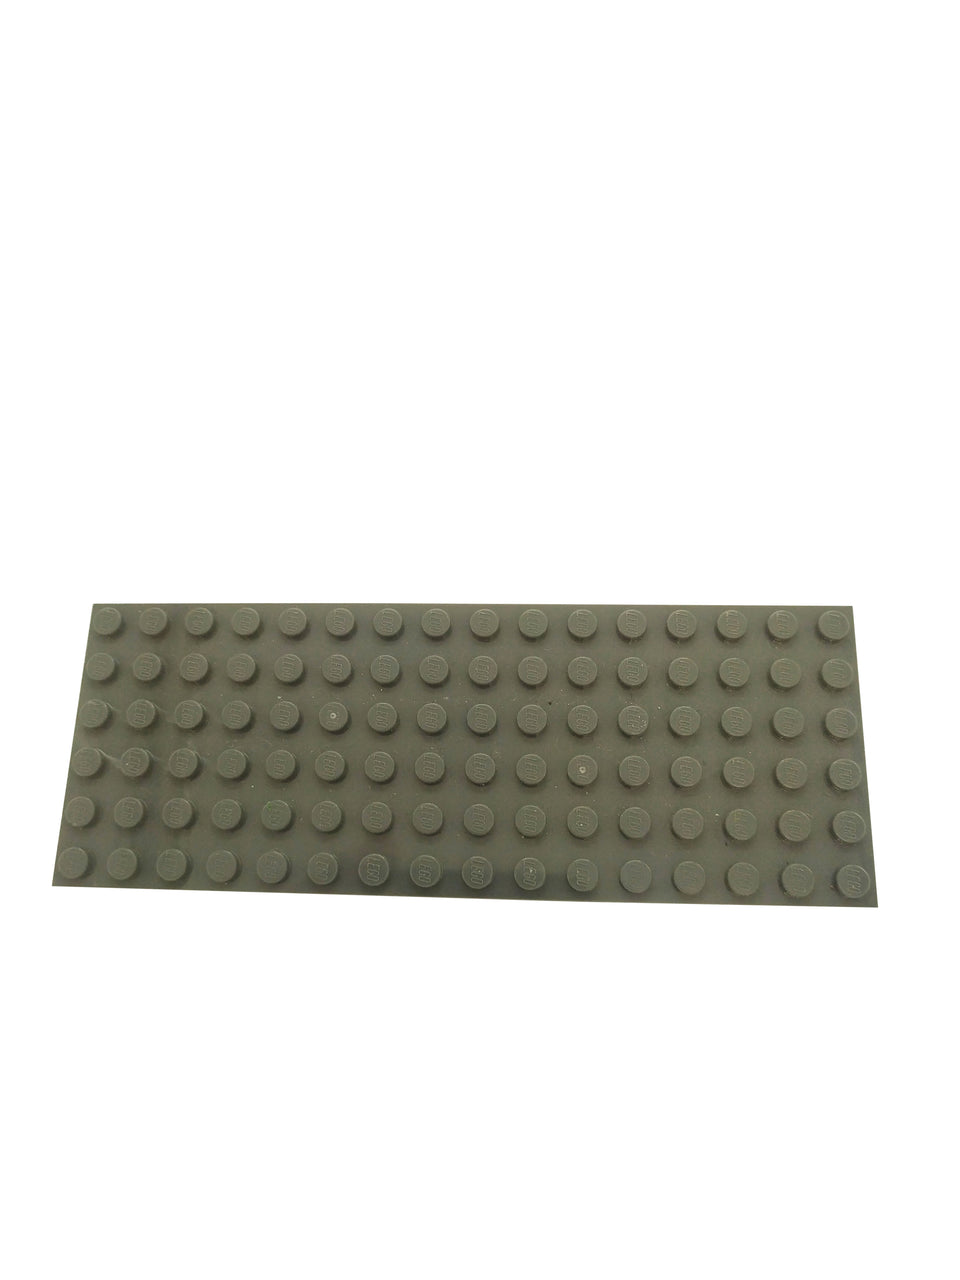 Dark gray surface 6 * 16 - Lego